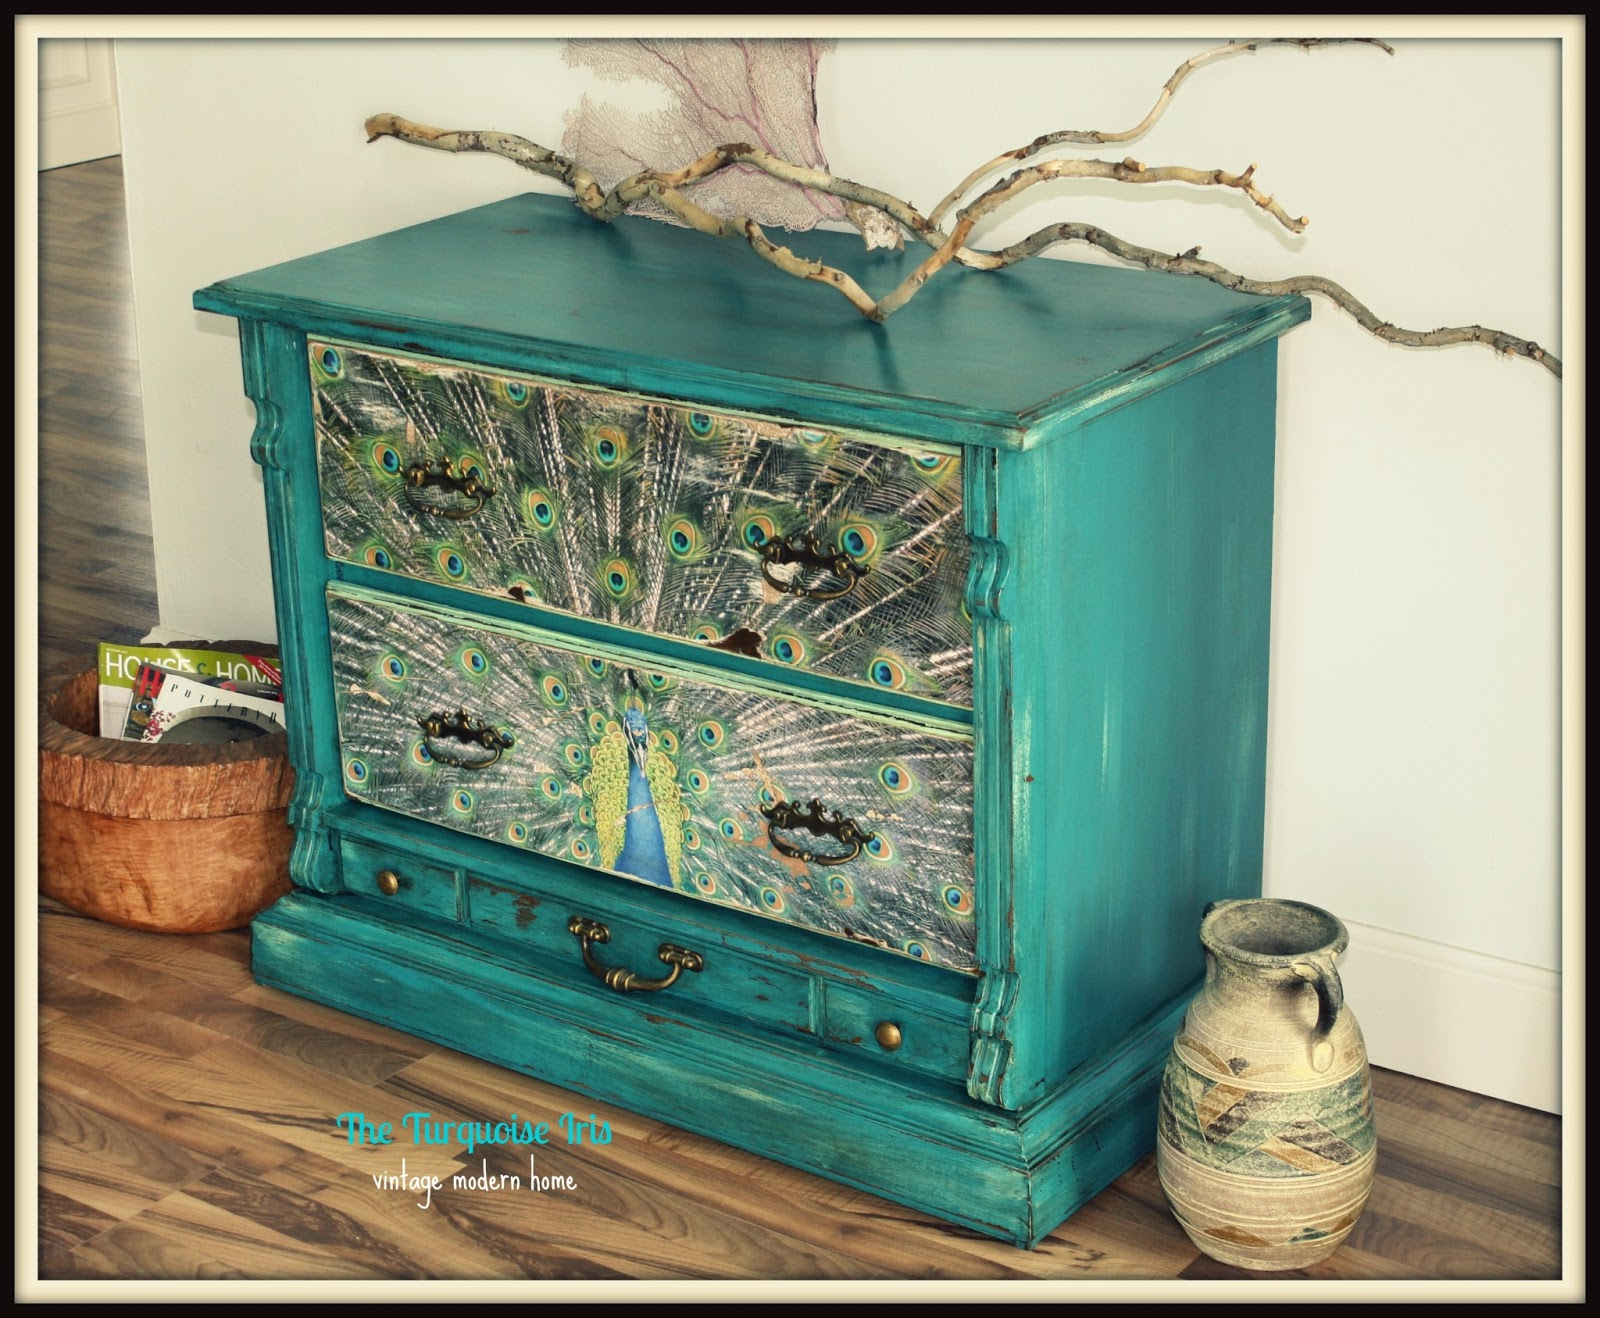 Teal Vintage Dresser / Chest Accented With A Peacock